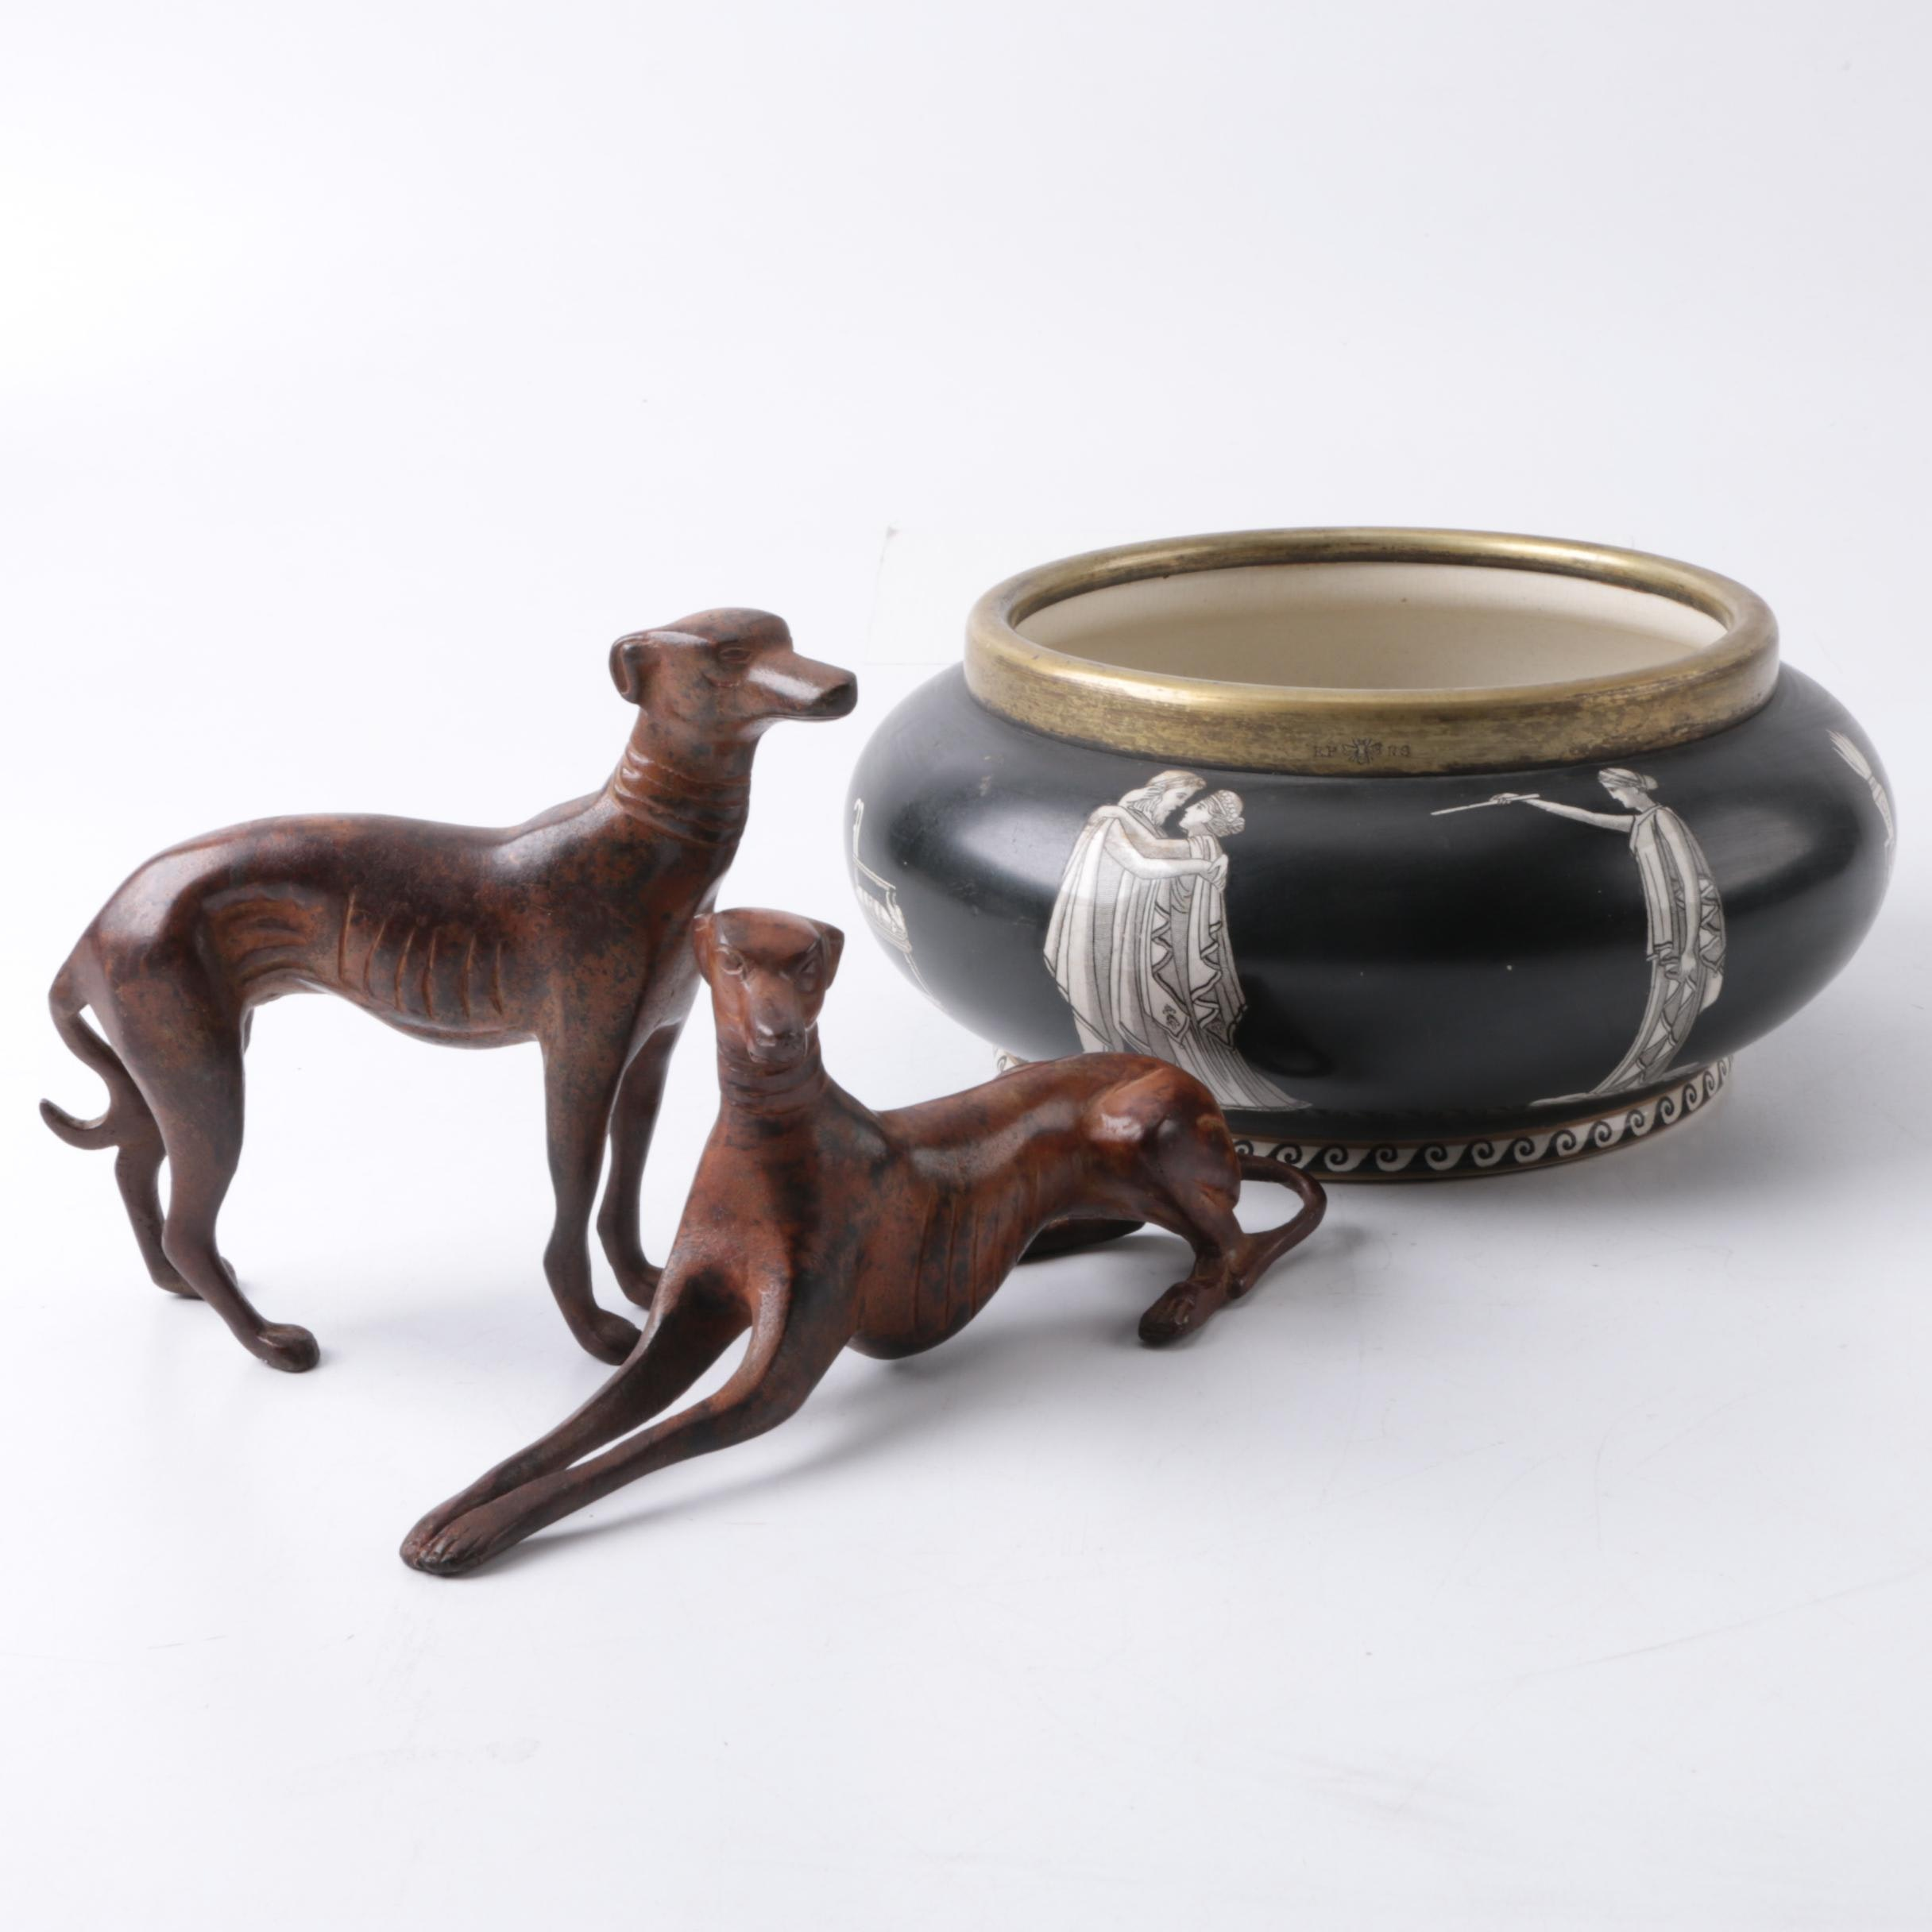 Classical Style Rialto Ware Vessel and a pair of Cast Metal Greyhound Figurines